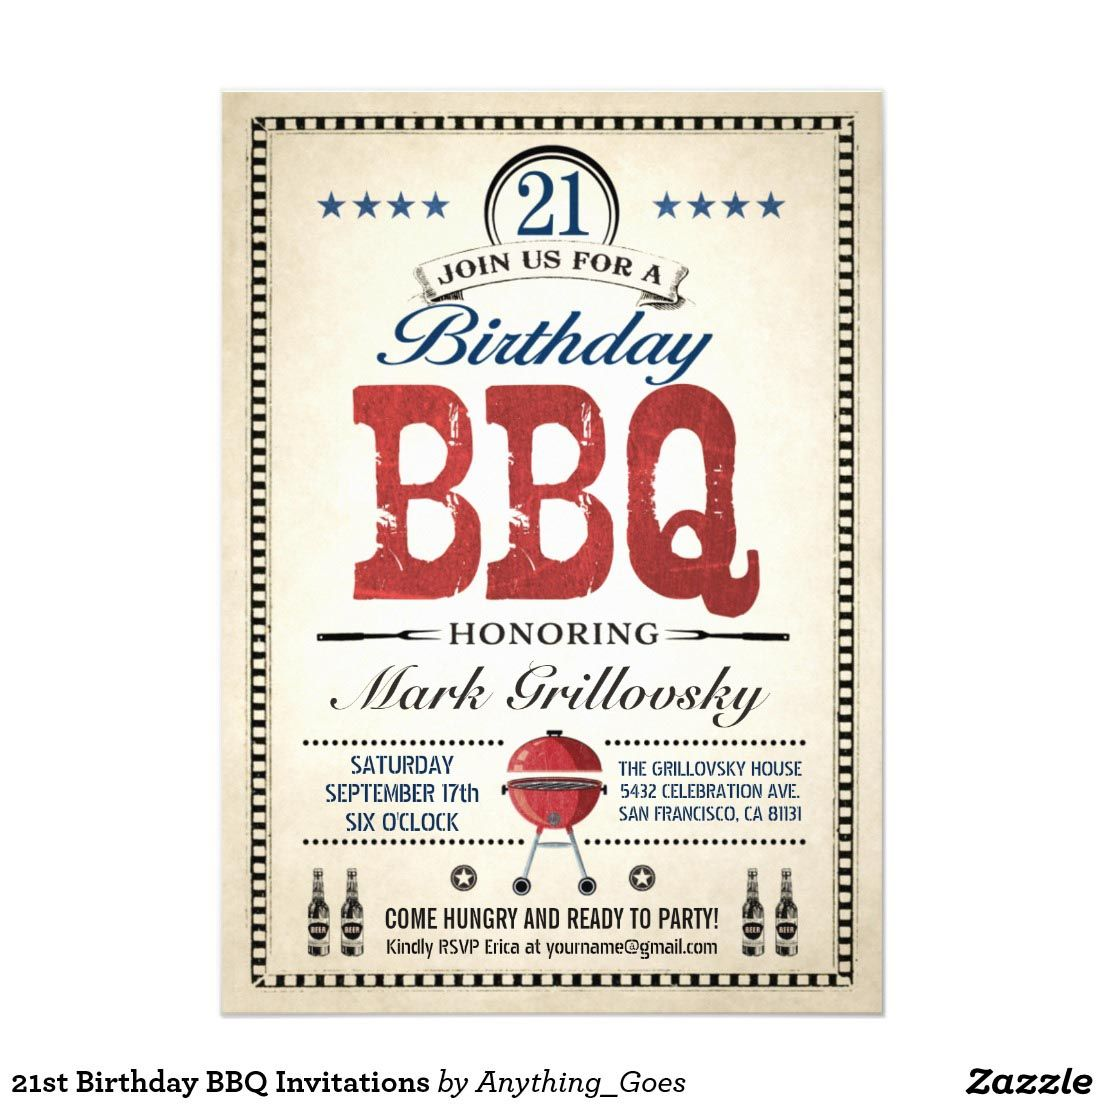 21st Birthday BBQ Party Ideas | BBQ | Pinterest | Birthday bbq